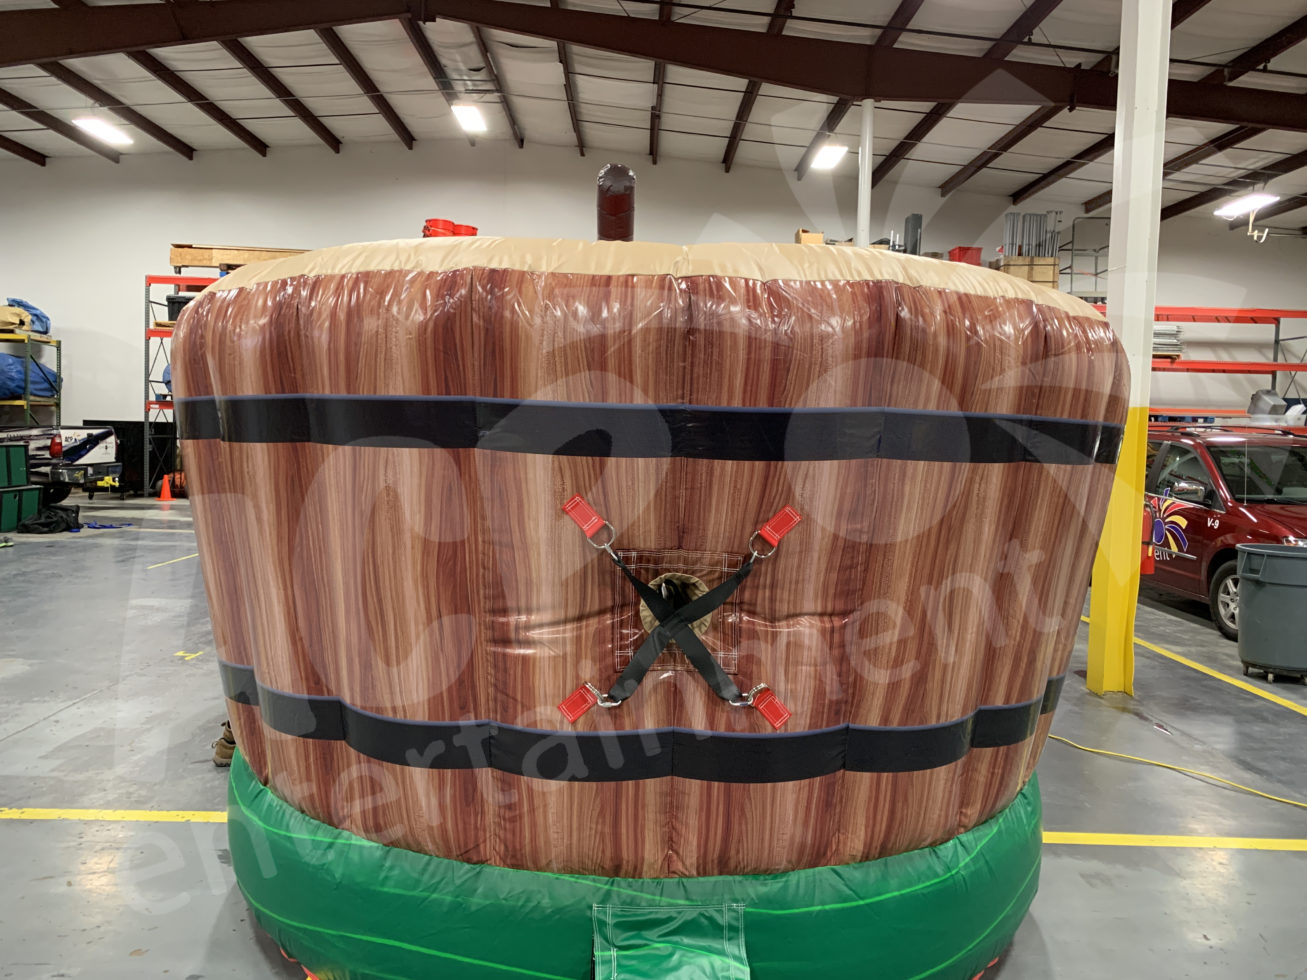 Outside barrel portion of bobbing for apples game